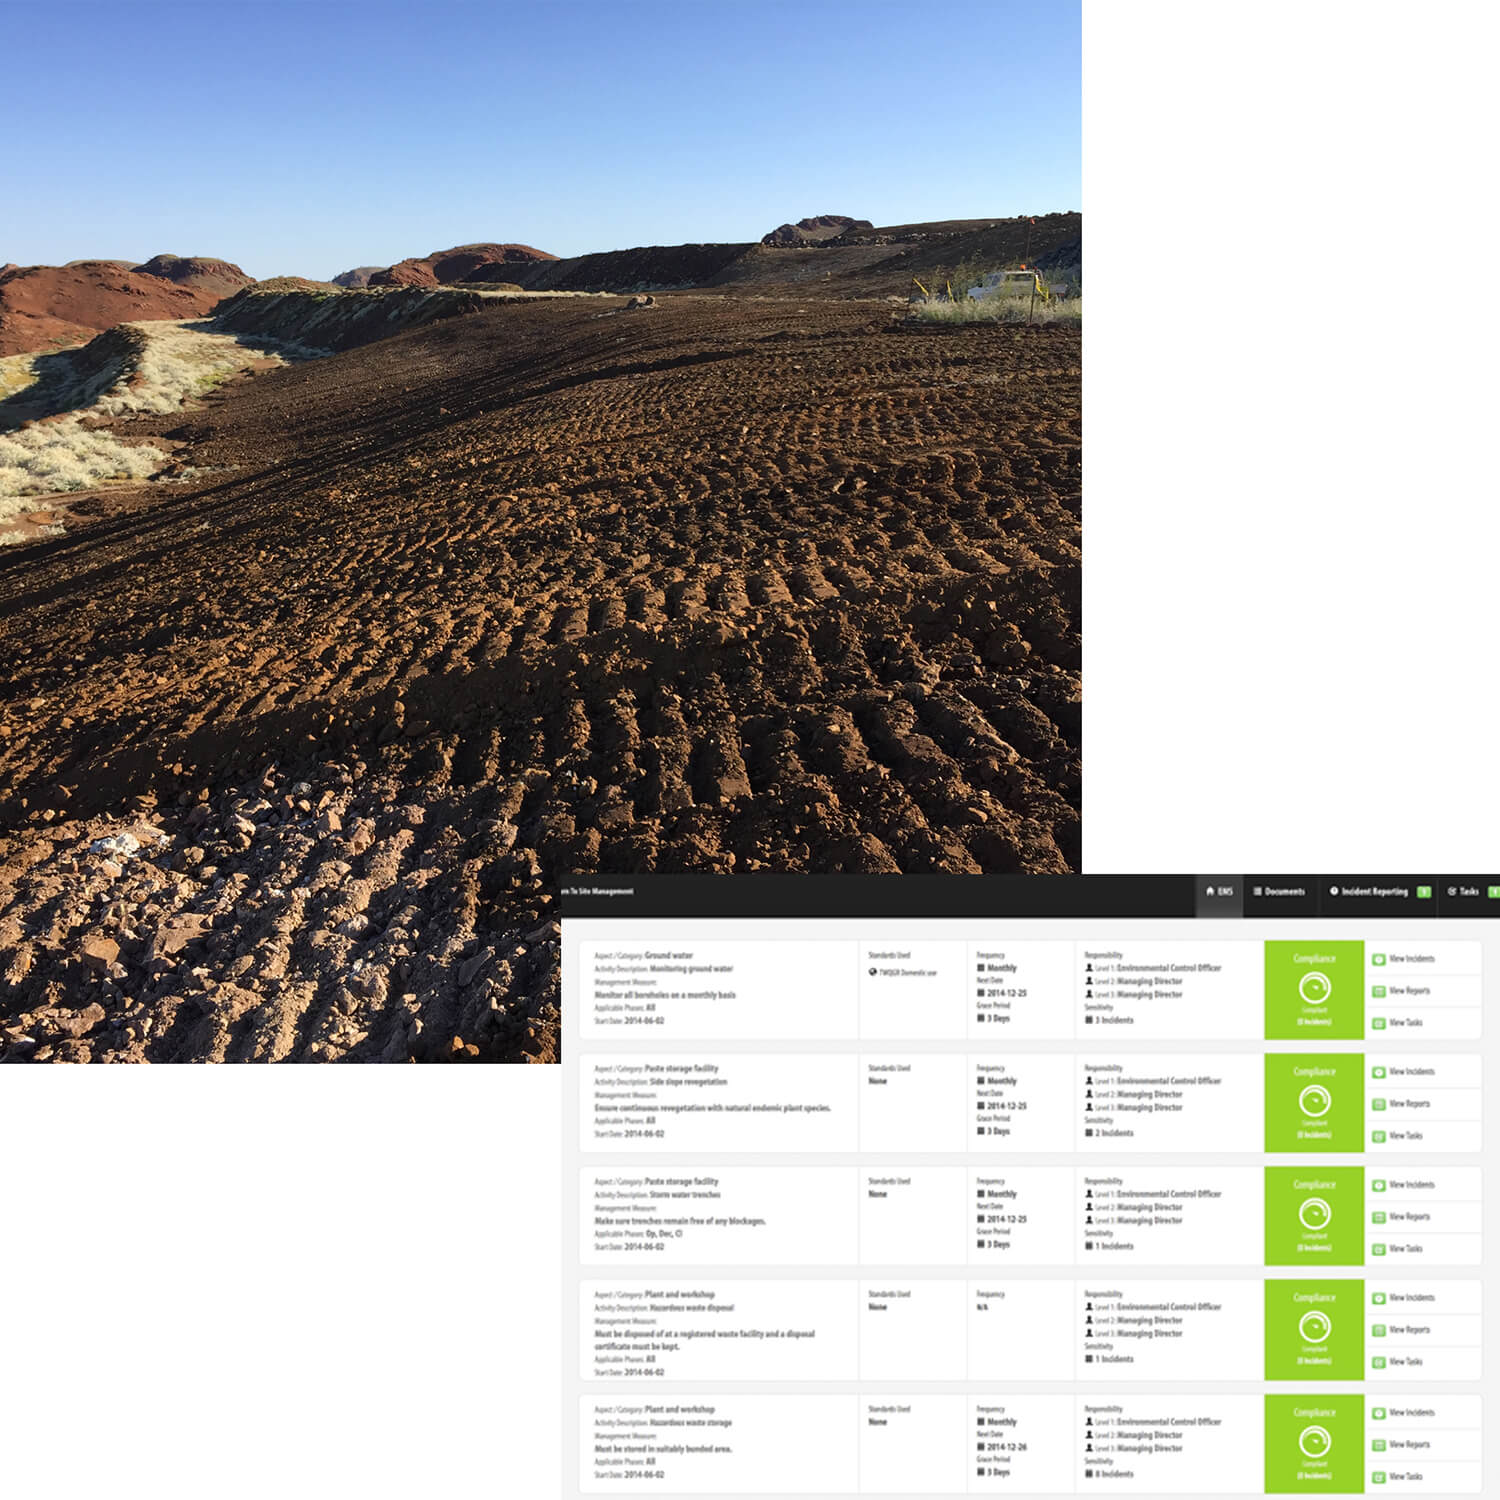 Mine closure services - Compliance reporting, management and improvement.